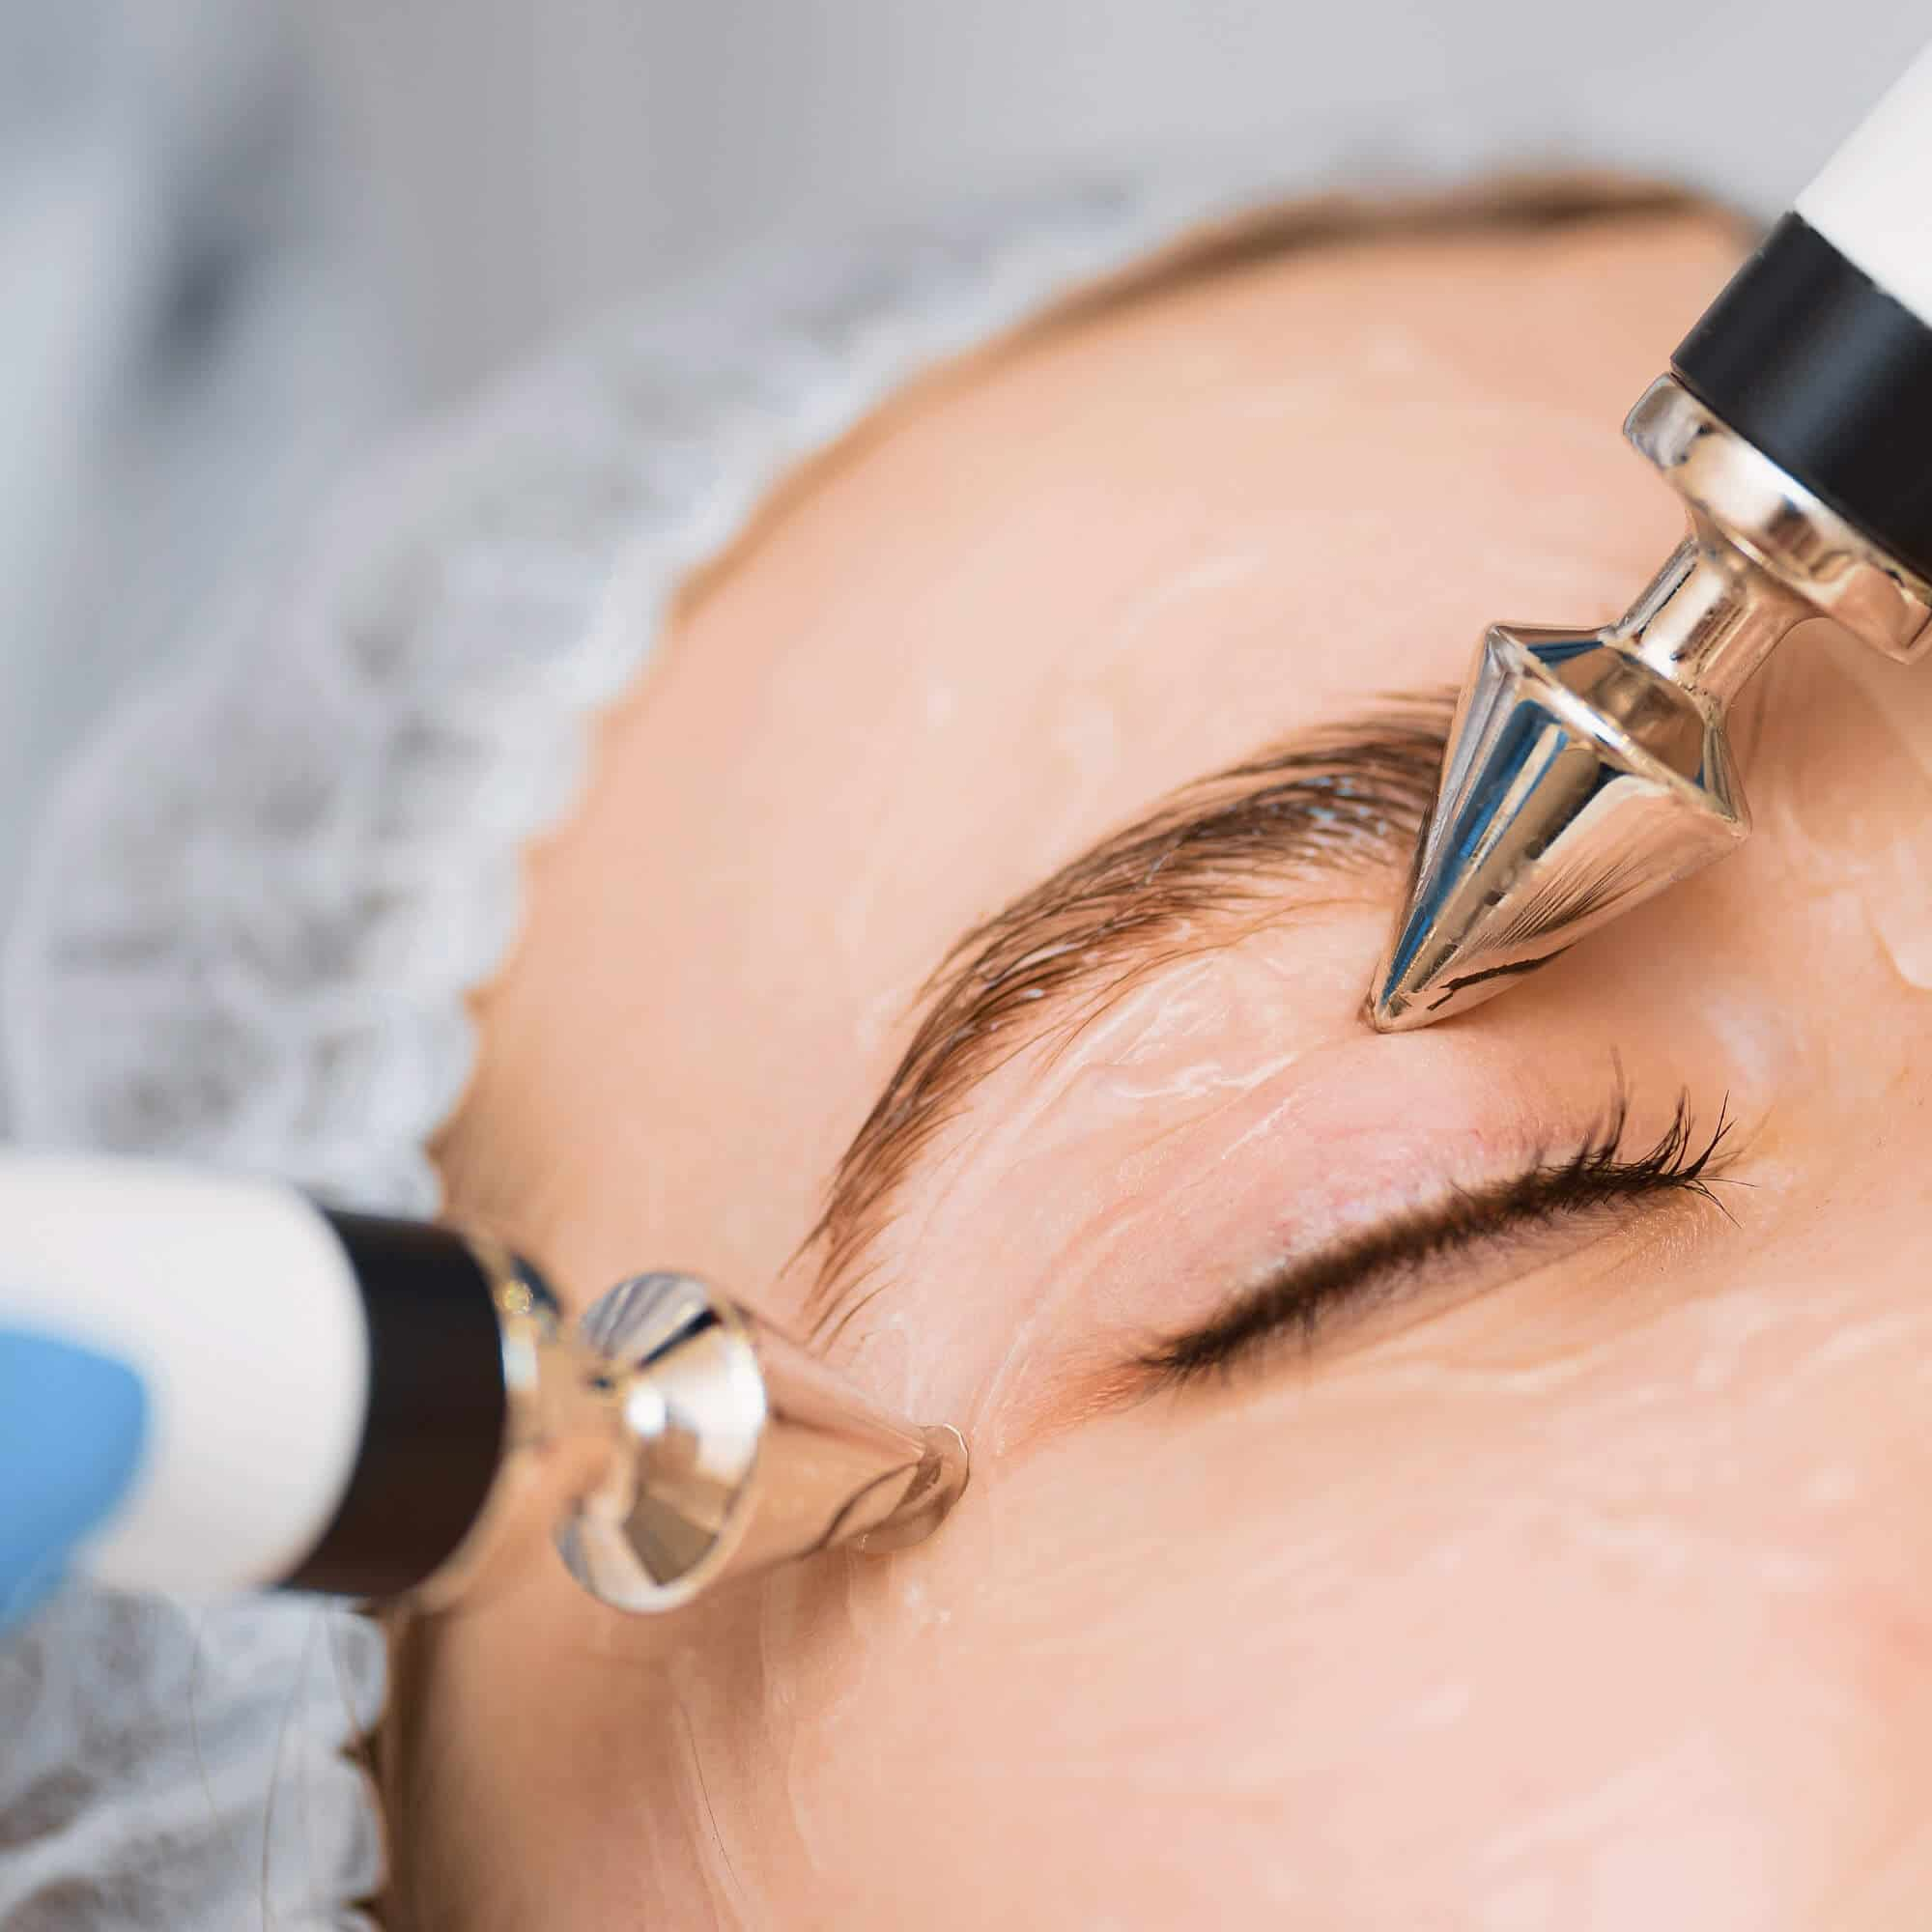 microcurrent non surgical face lift